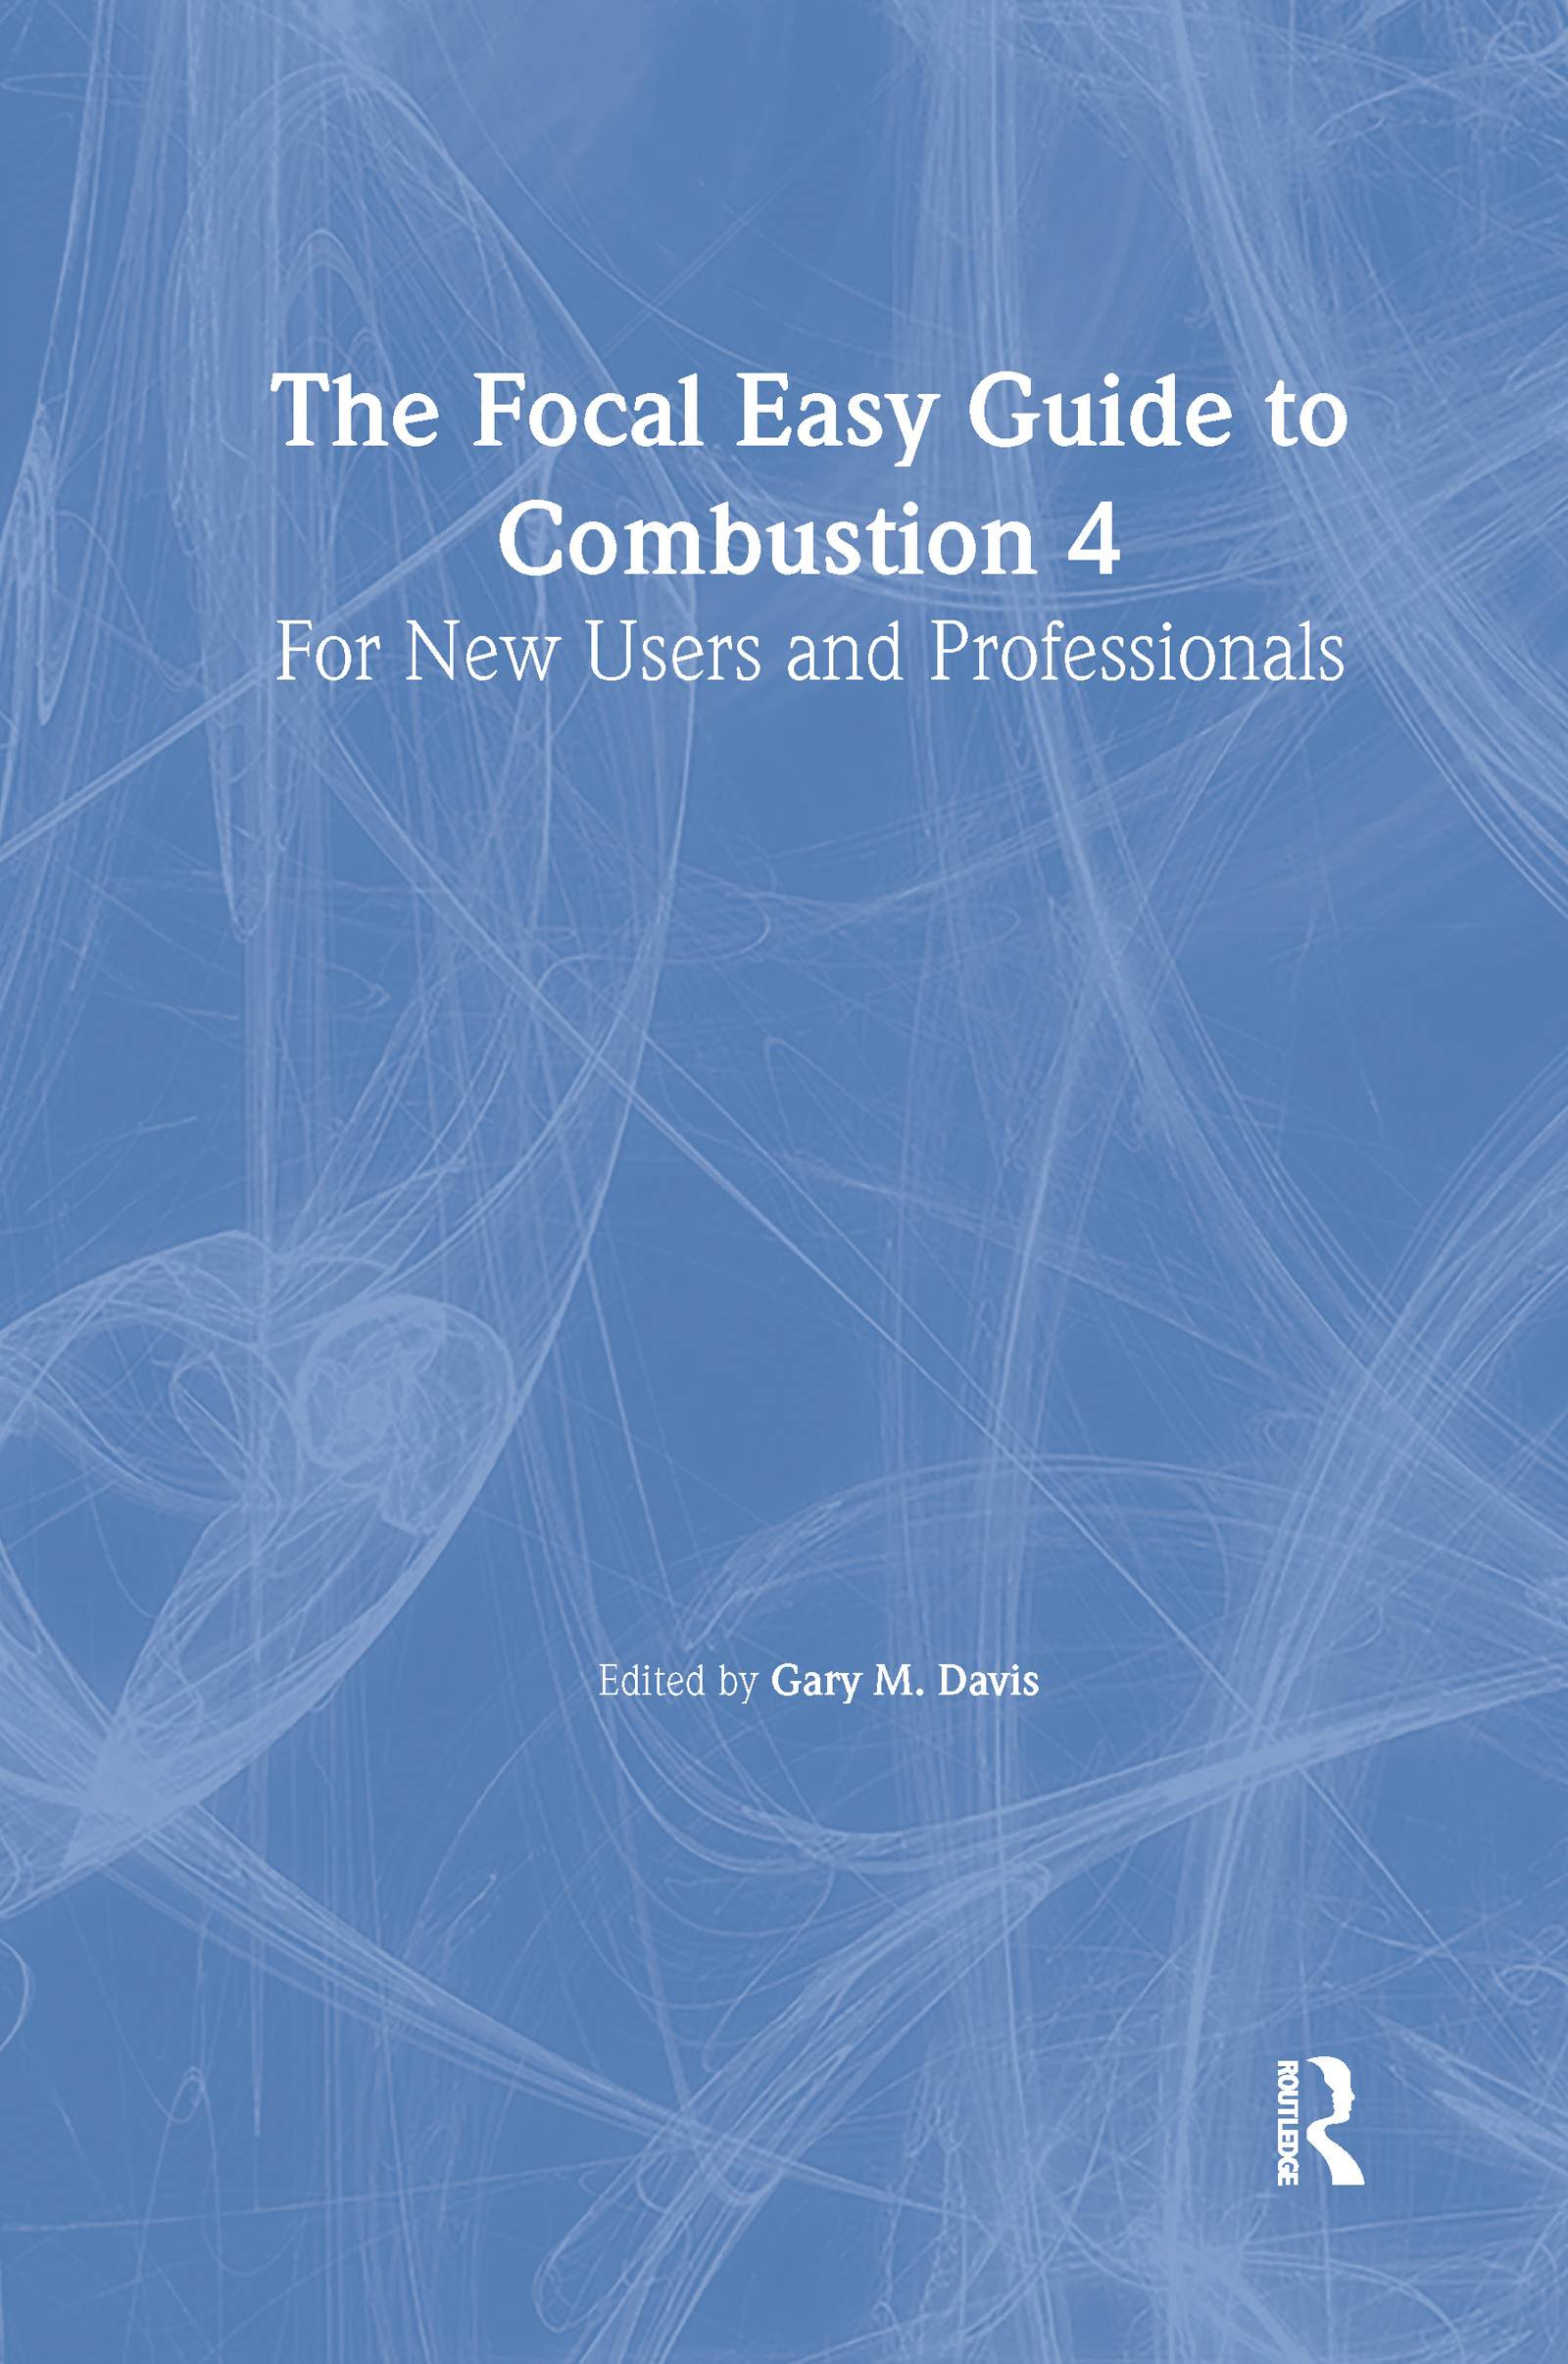 The Focal Easy Guide to Combustion 4: For New Users and Professionals book cover